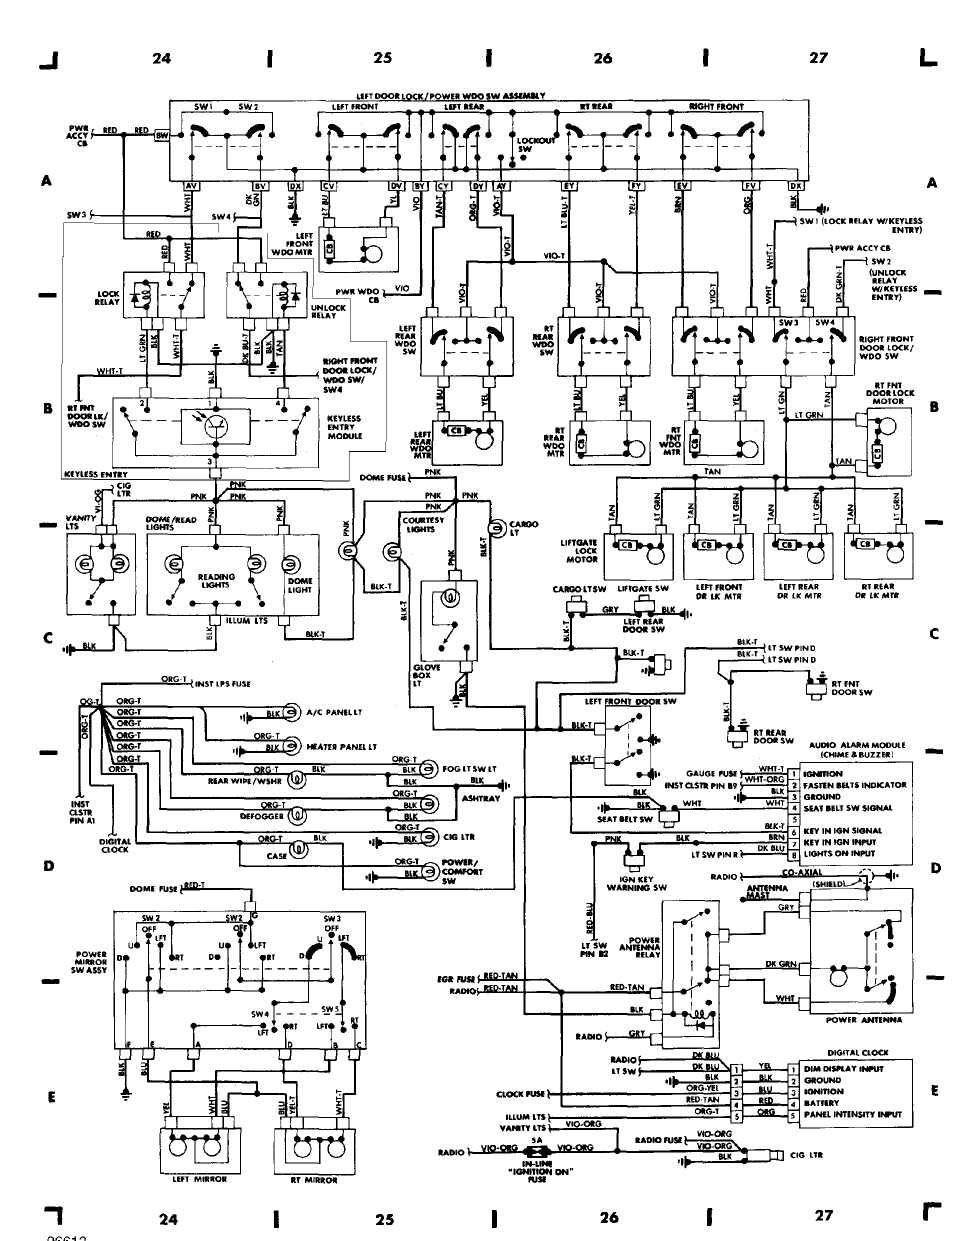 wiring_diagrams_html_61f5e0ad 2000 jeep xj wiring diagram 1998 jeep cherokee wiring diagrams pdf 1998 jeep grand cherokee engine wiring harness at crackthecode.co